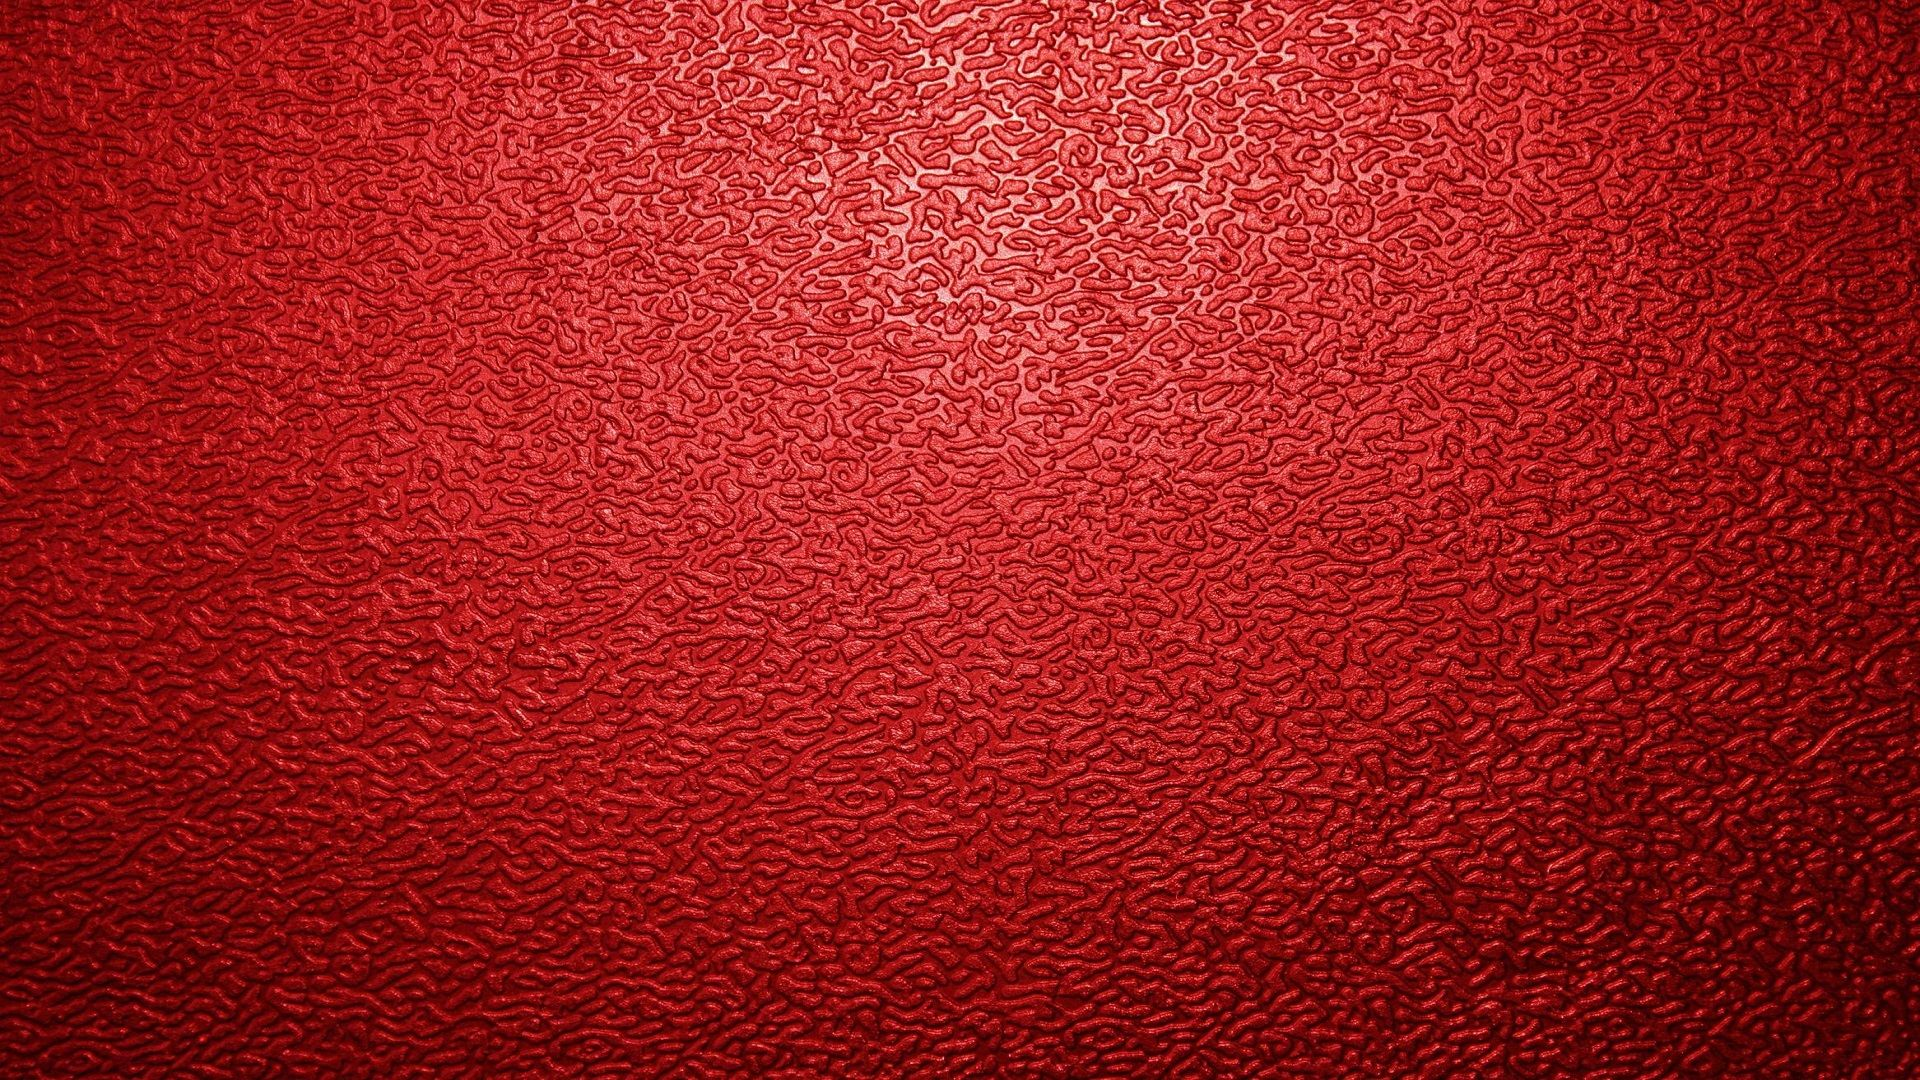 pin by nash 7 reds on xxred gear in 2019 red wallpaper textured rh pinterest com